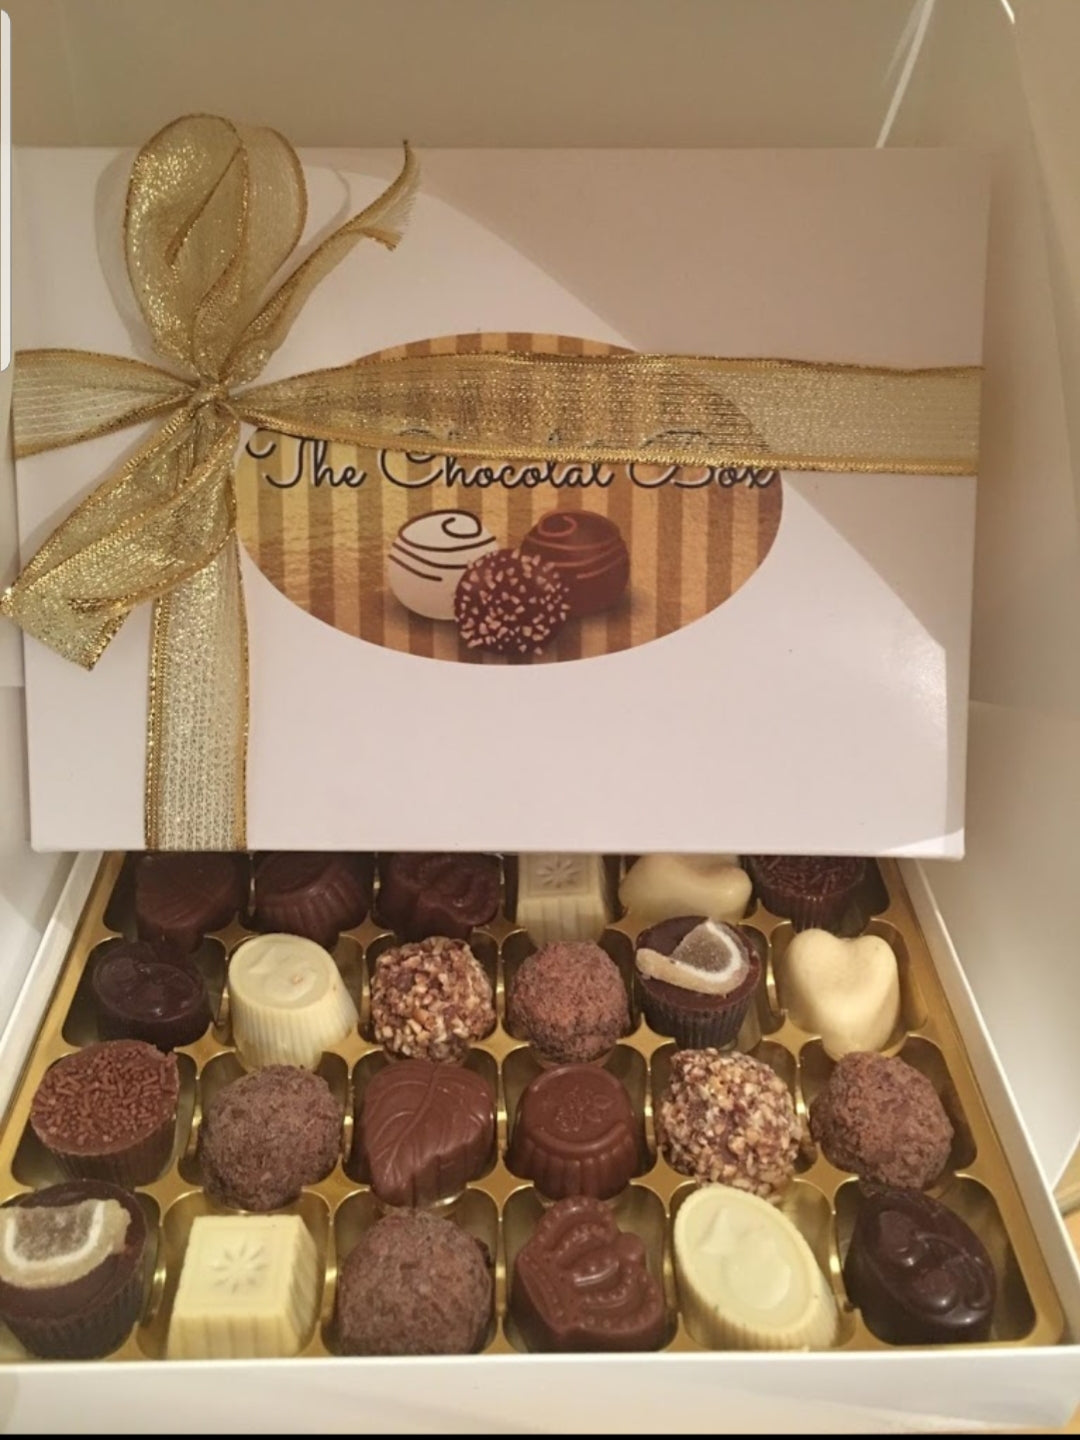 Gluten Free Belgian Chocolate Gift Box for any occasion. www.thechocolatbox.co.uk